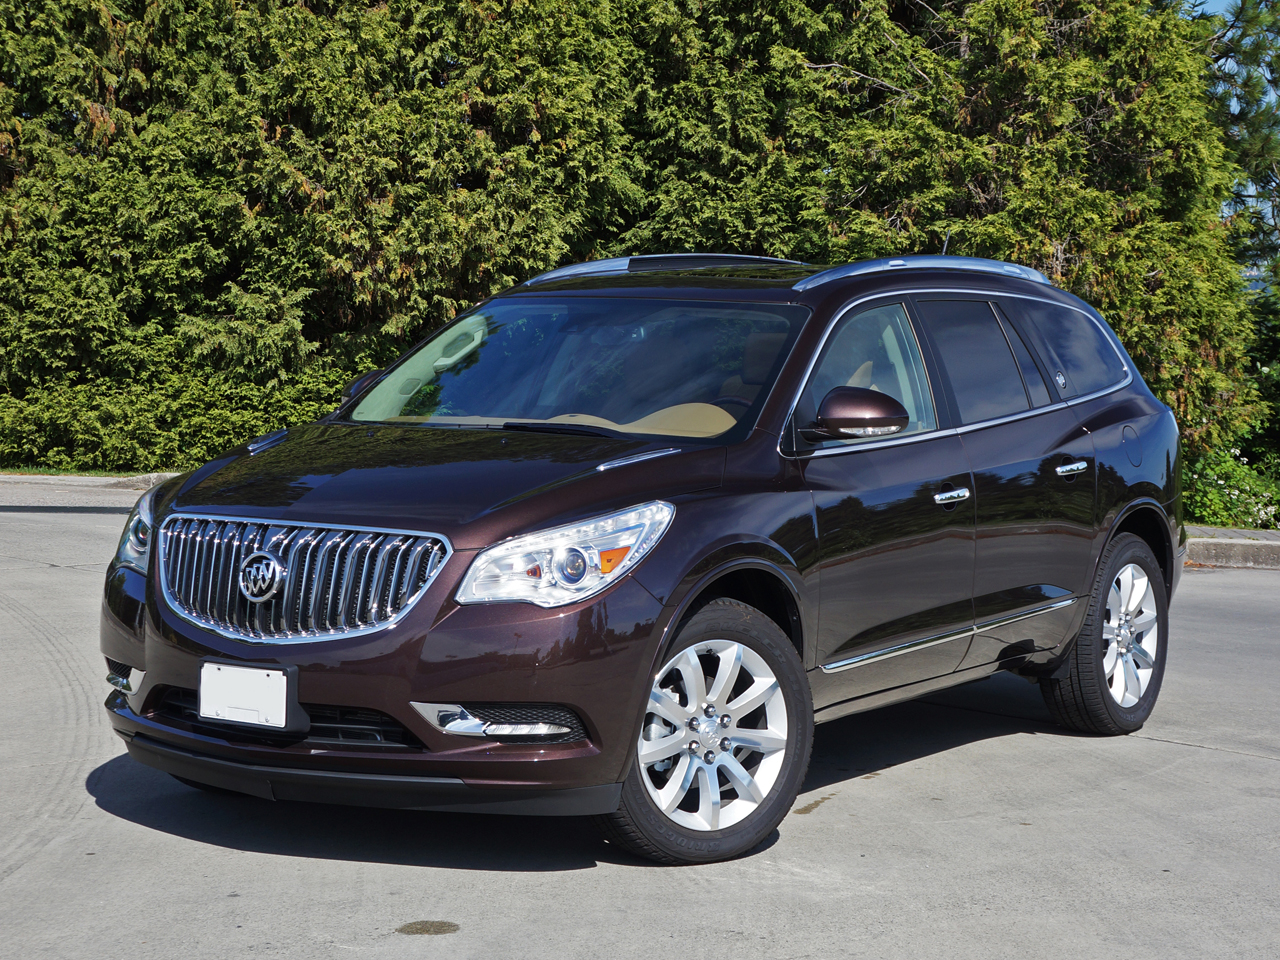 cruising first impression enlcave would in approve enclave buick sinatra l a